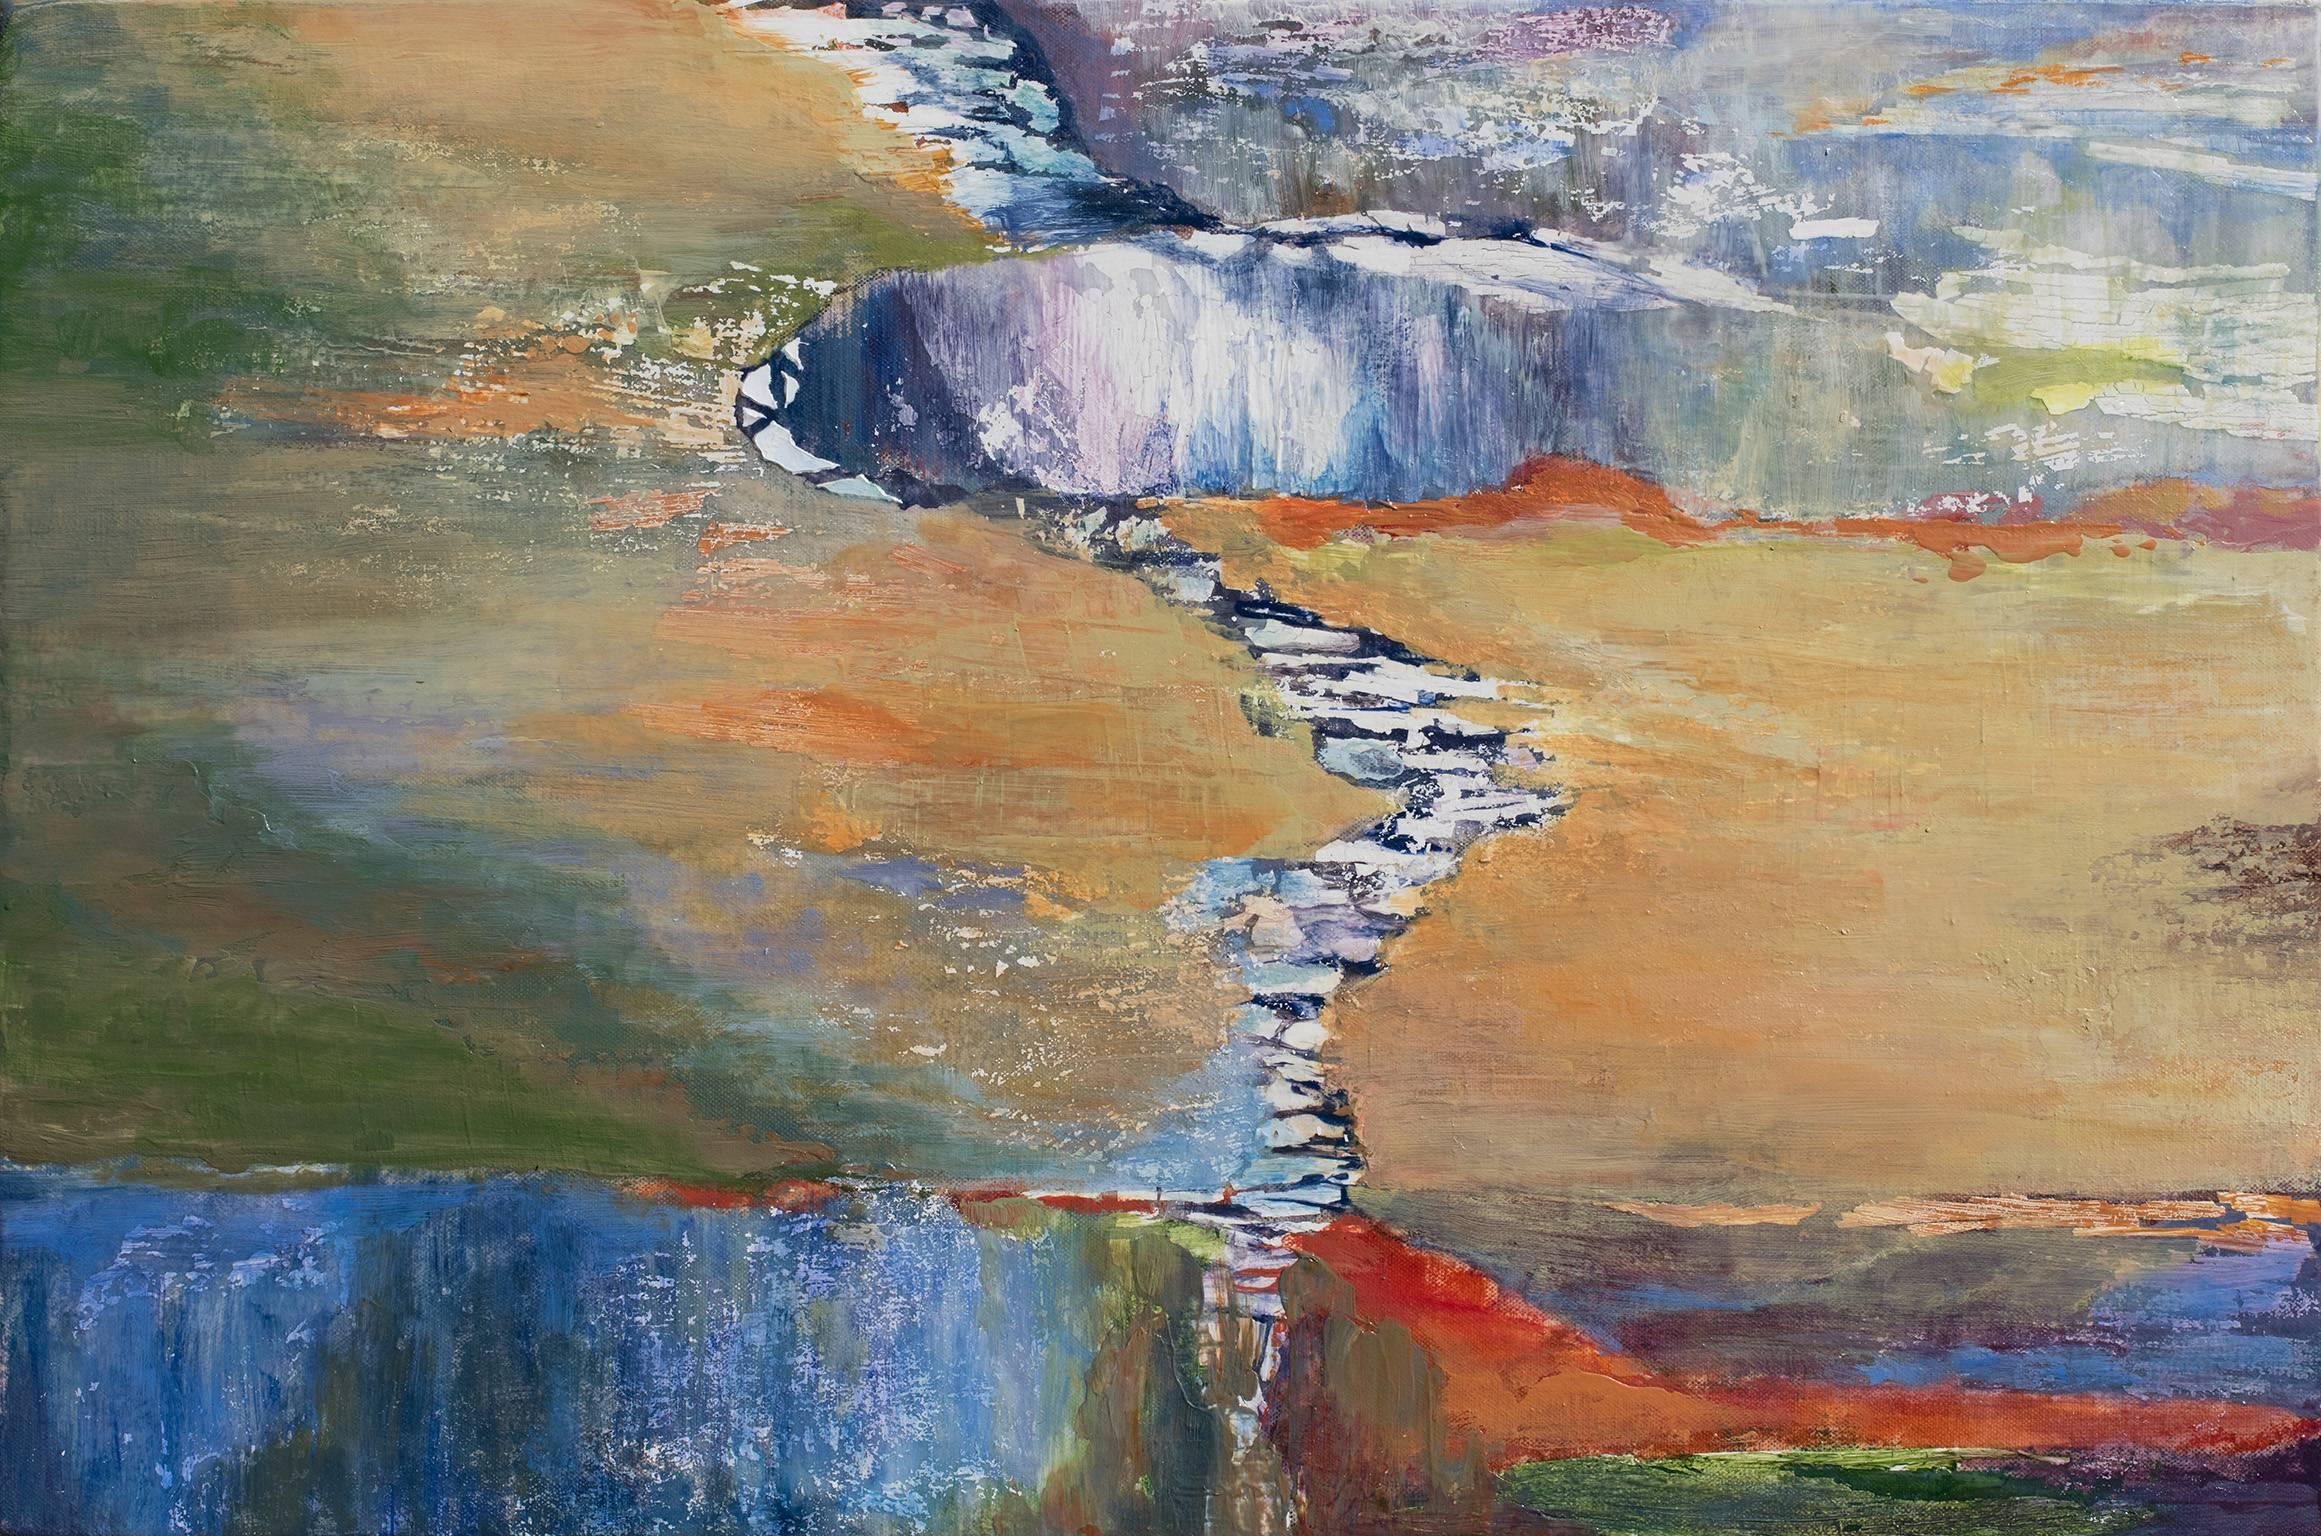 High Falls Redux - Abstract Landscape Oil Painting in Yellow, Blue and Green